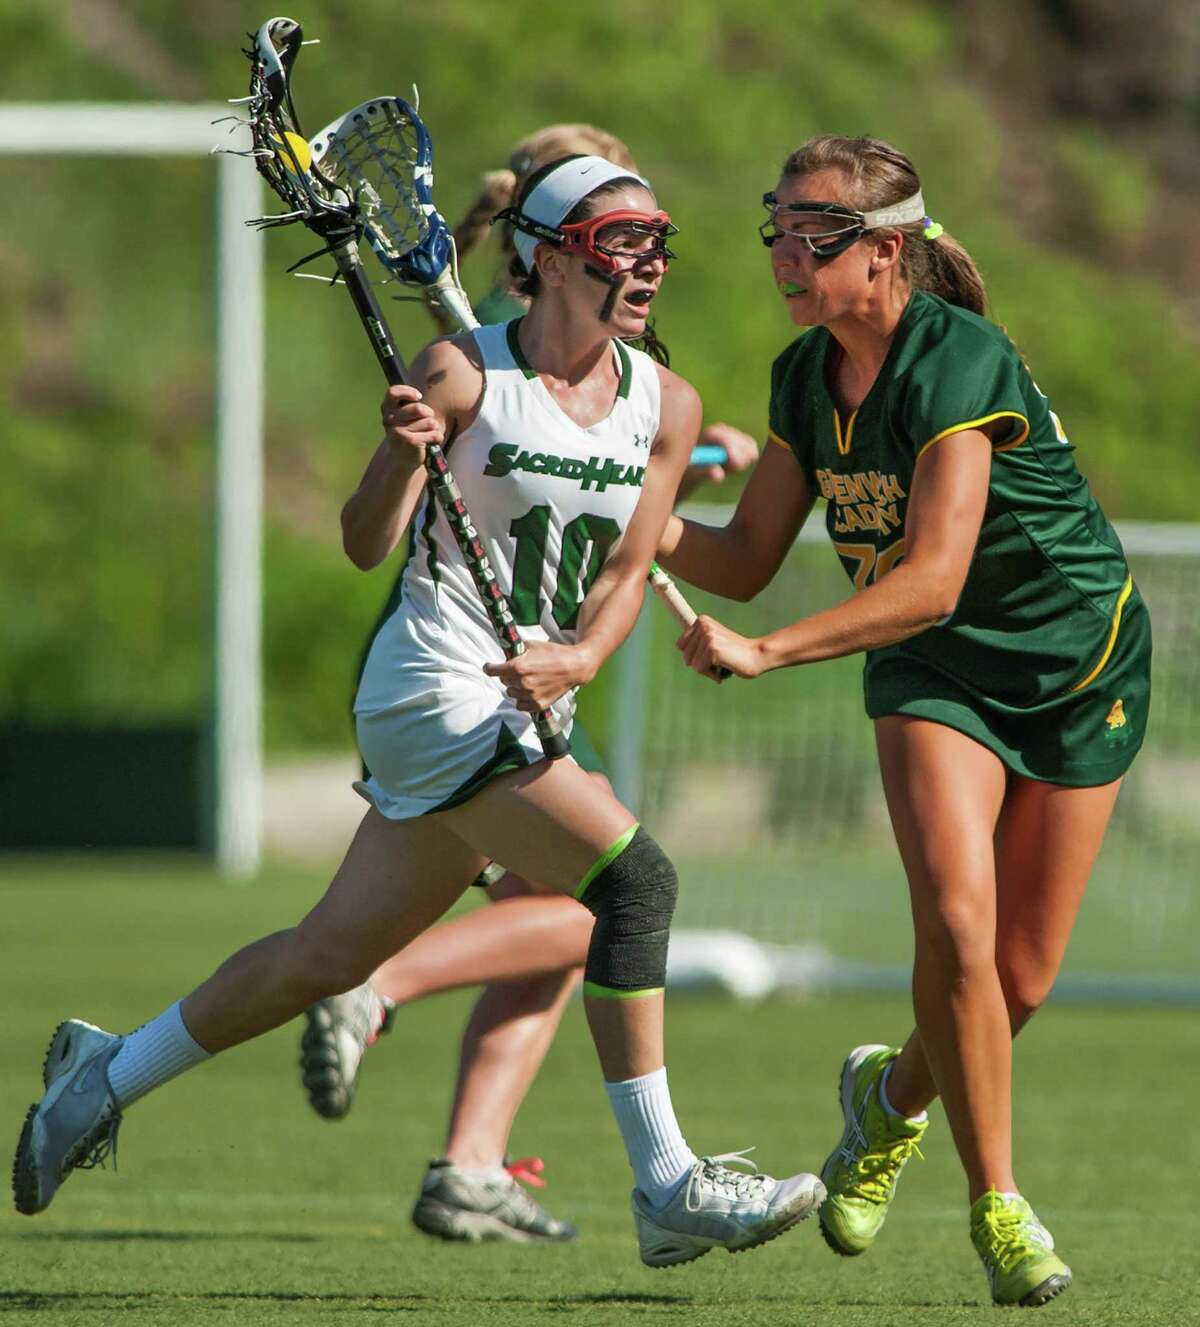 Convent of the Sacred Heart's Emma Novick tries to get by Greenwich Academy's Maggie Schmidt during the FAA girls lacrosse championship game played at Greenwich Academy, Greenwich, CT on Tuesday, May 20th, 2014.